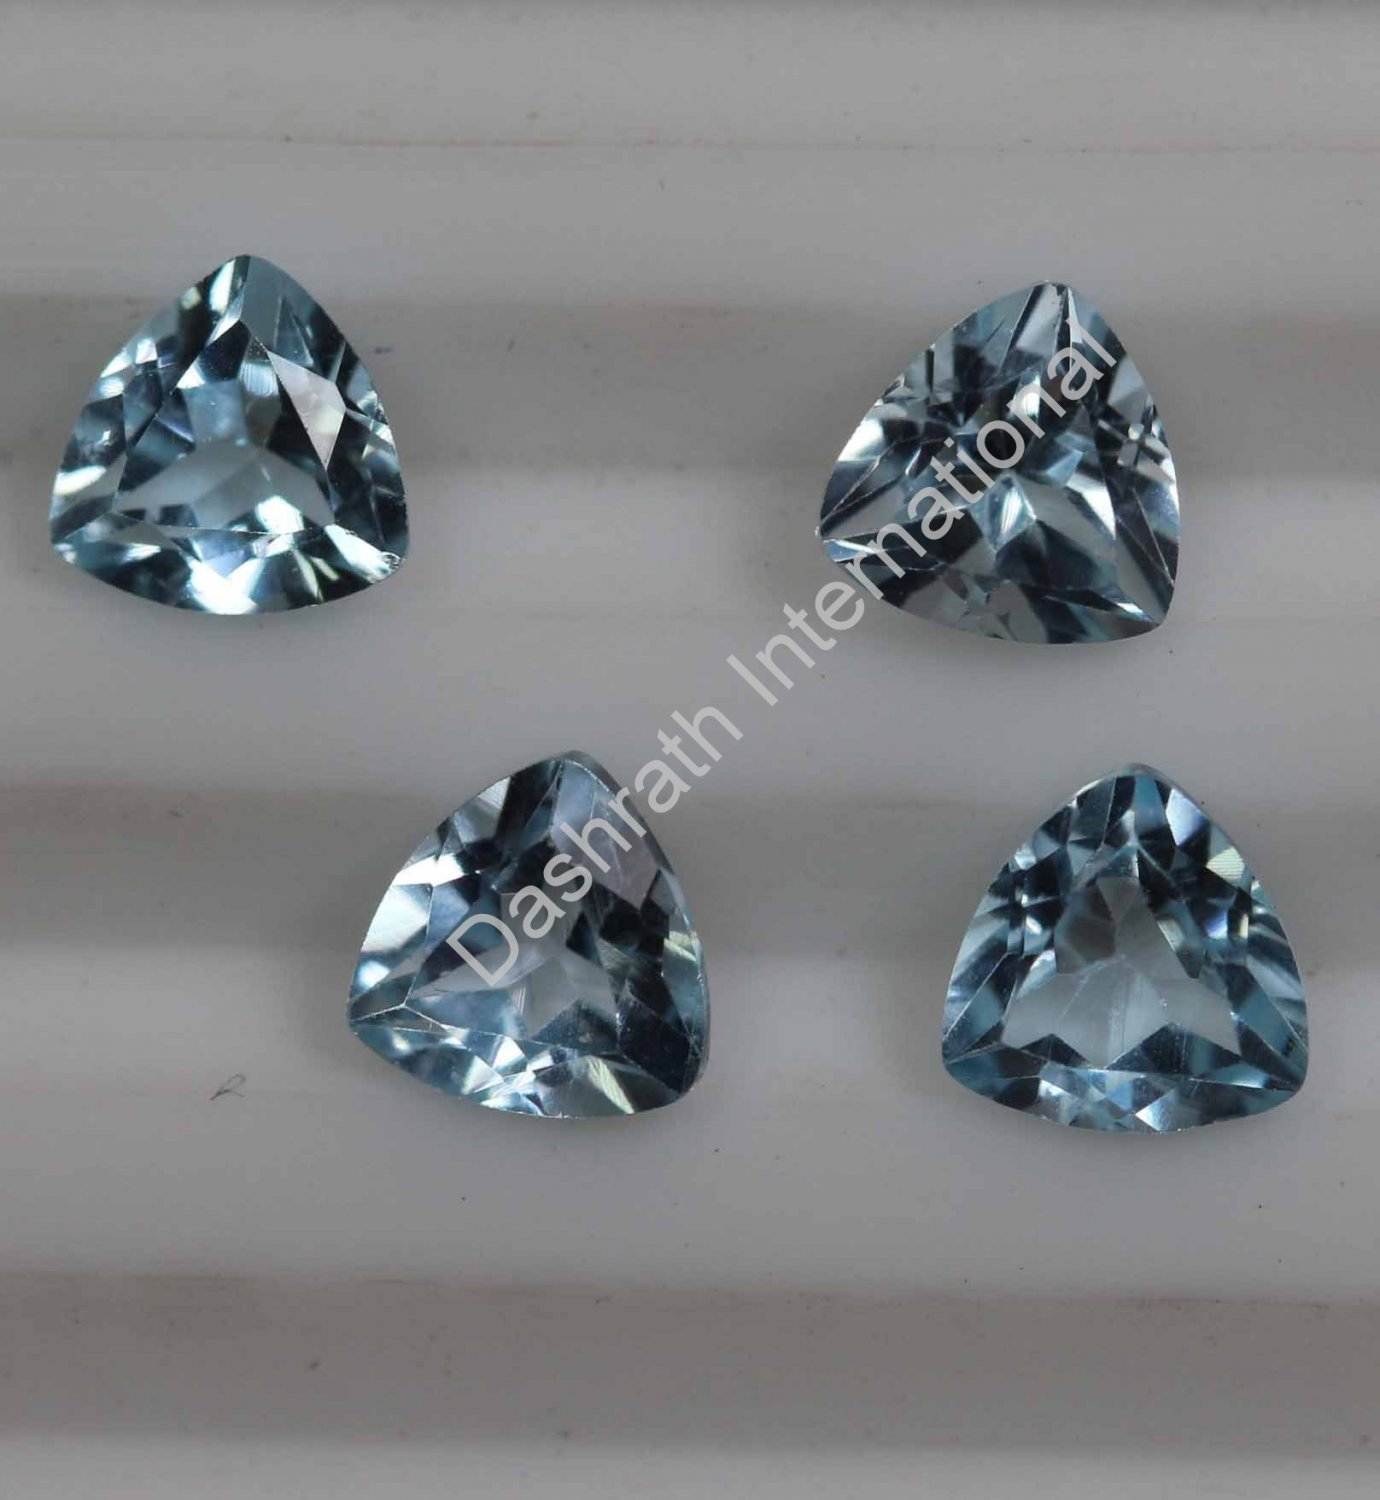 8mm Natural Sky Blue Topaz Faceted Cut Trillion 10 Pieces Lot  Top Quality Loose Gemstone